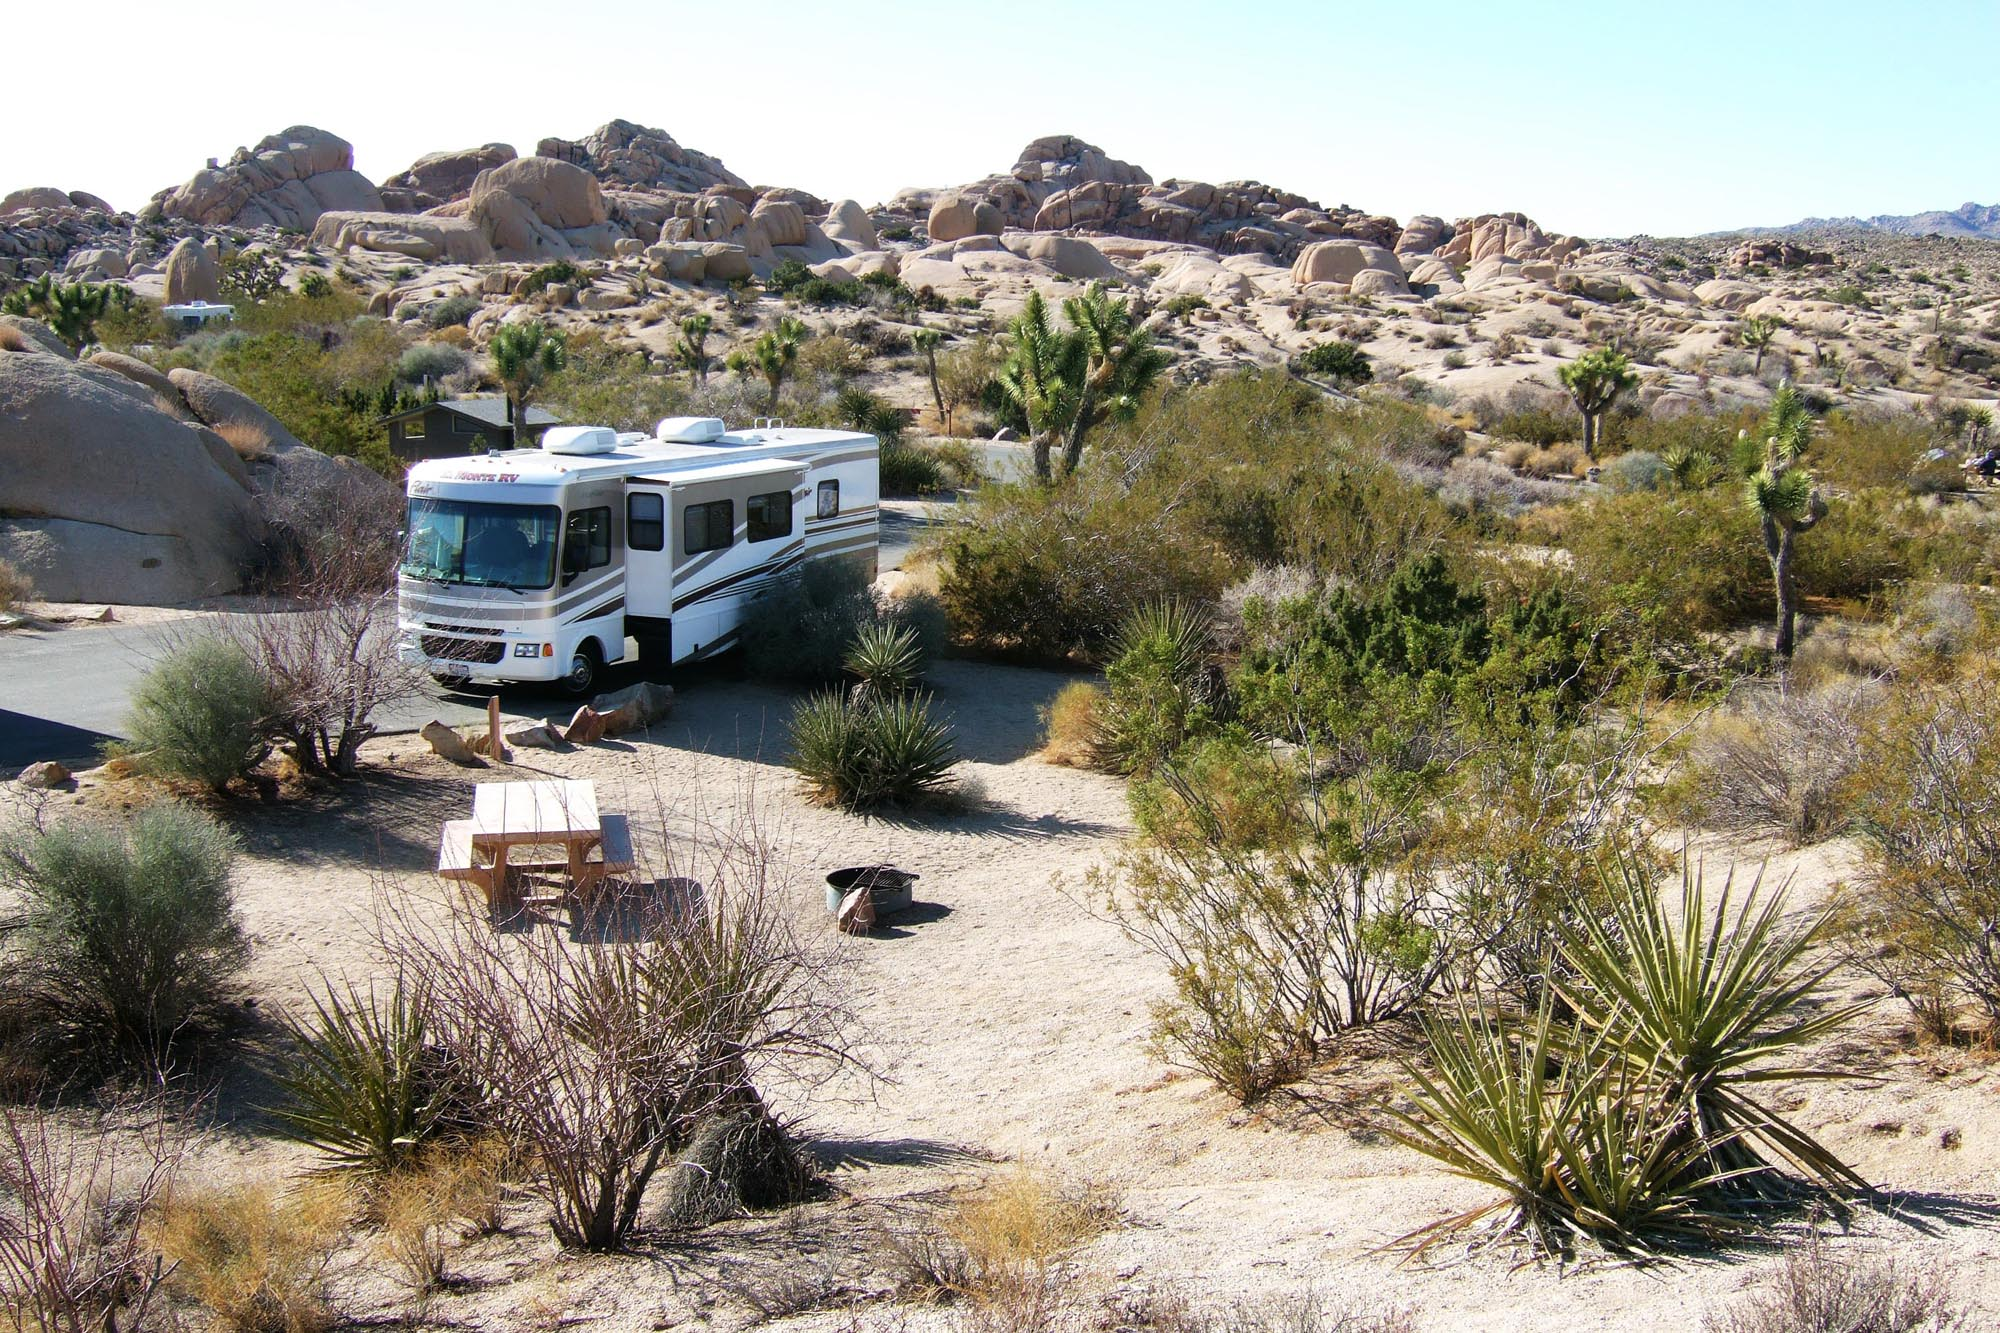 joshua-tree-national-park (1).jpg